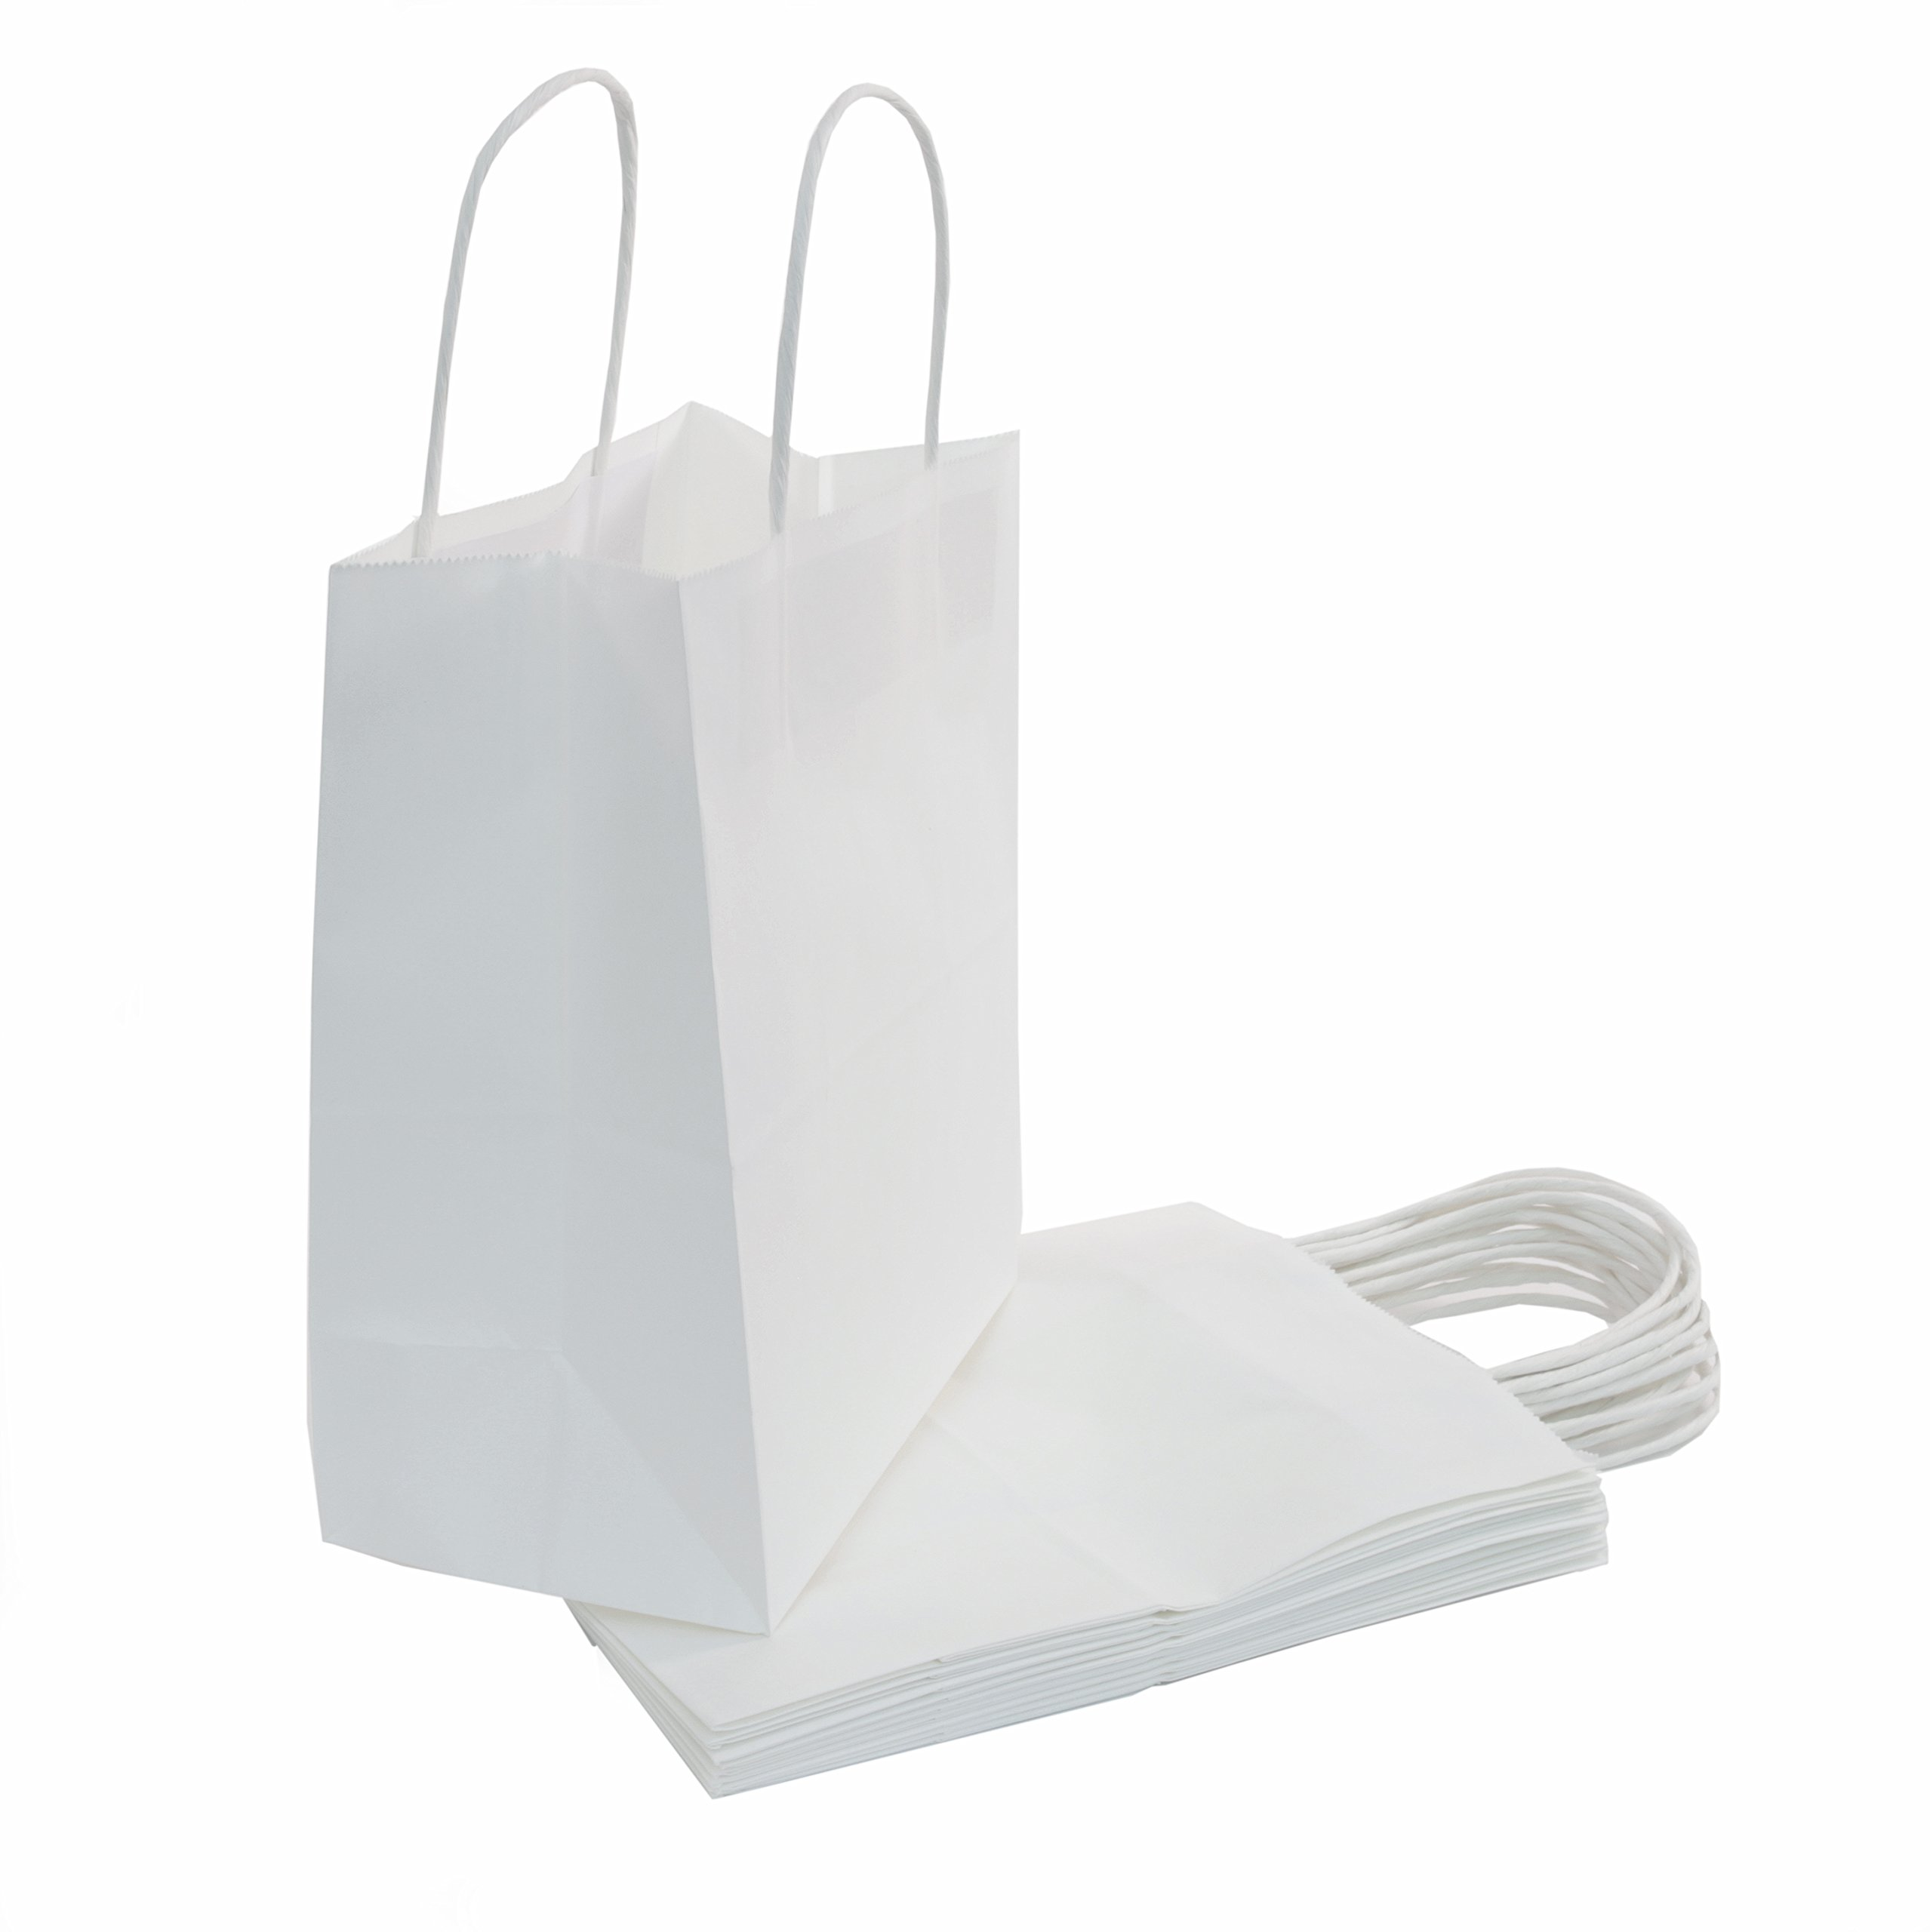 100 | 50 | 25 Count - Size (8''x4.75''x10'') Bulk White Paper Bags with Handles - Perfect Solution for Baby Shower, Birthday Parties, Gifts, Restaurant takeouts, Shopping, Retail